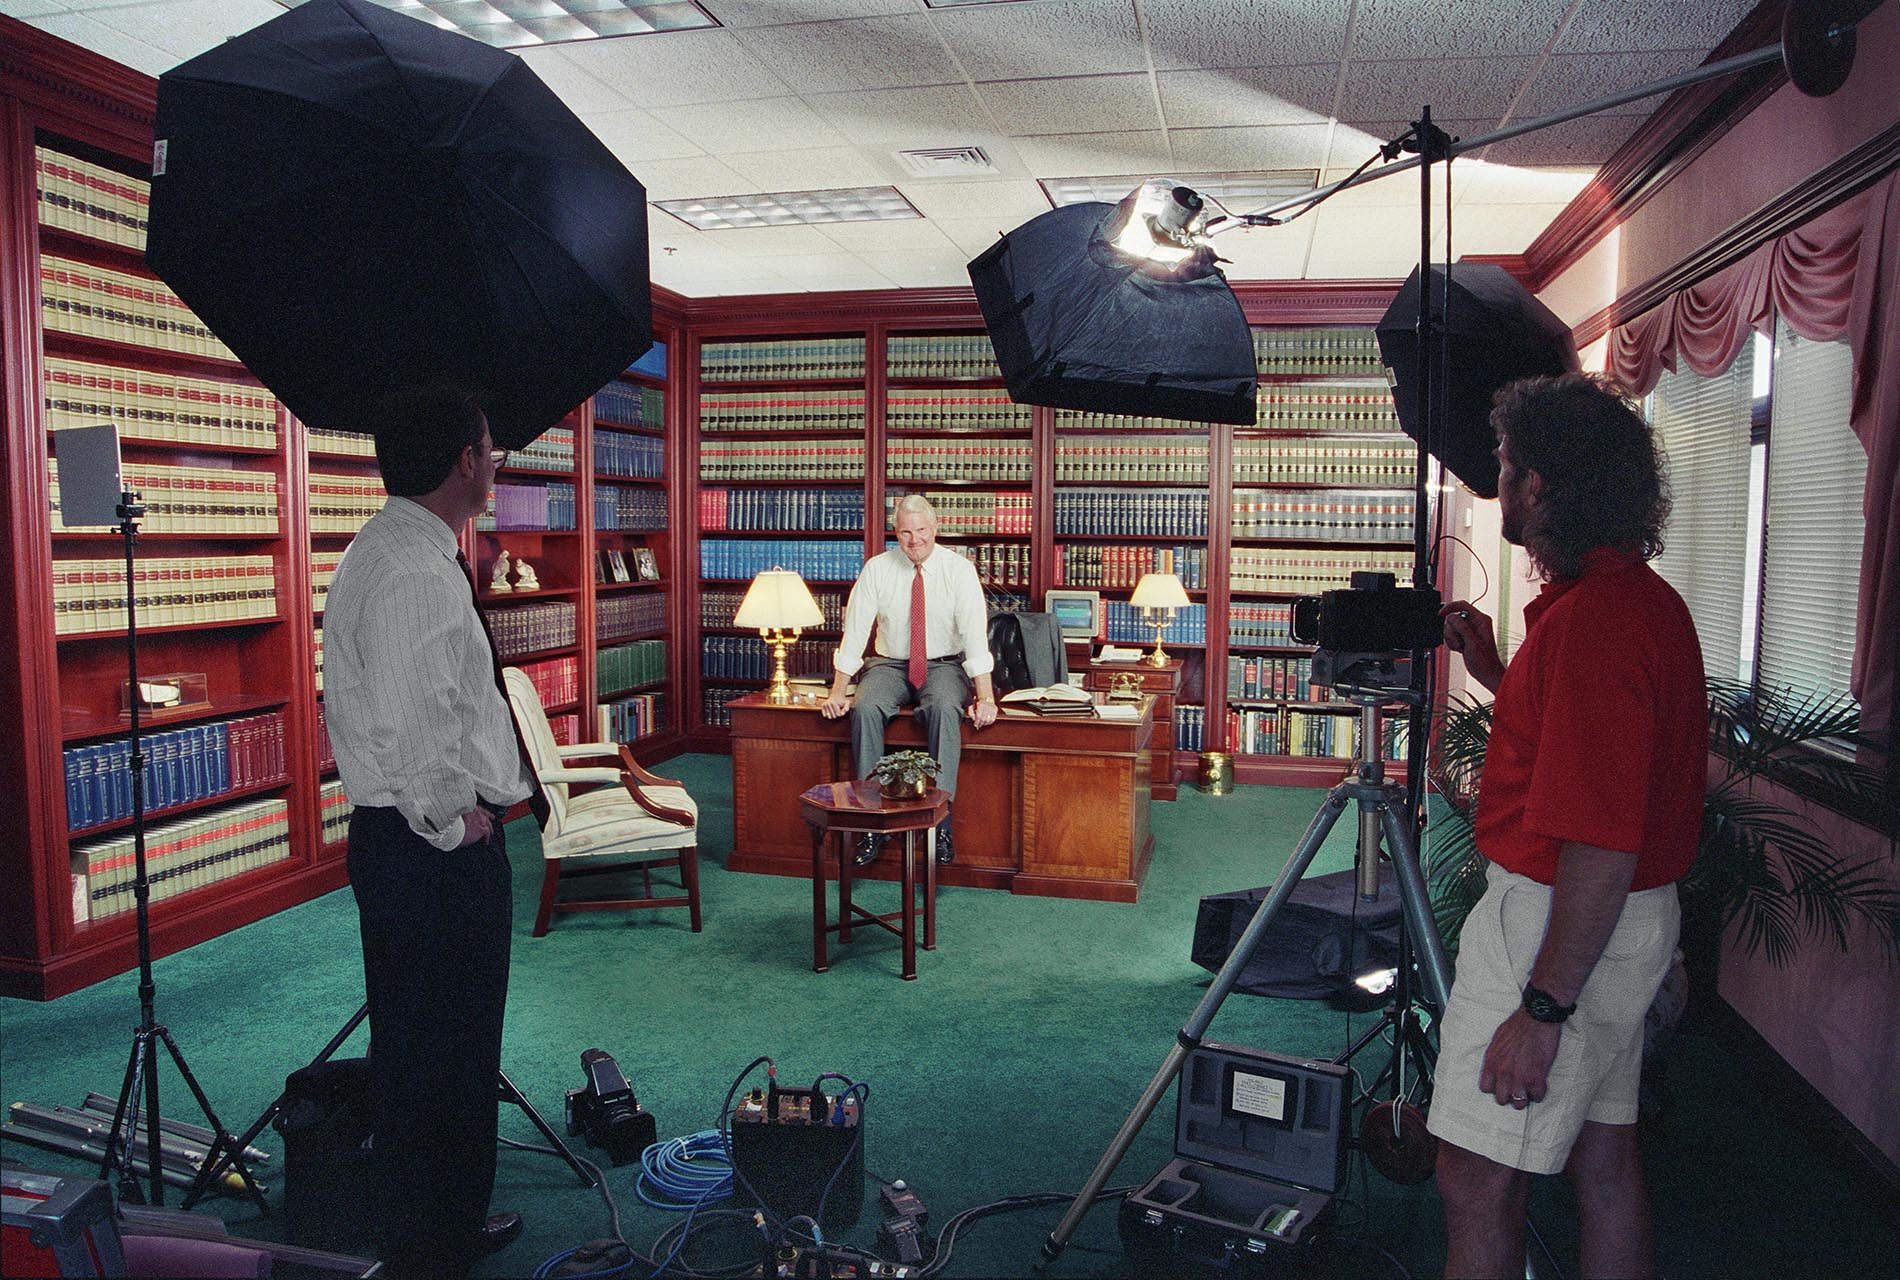 Behind the scenes location shot at attorney's office